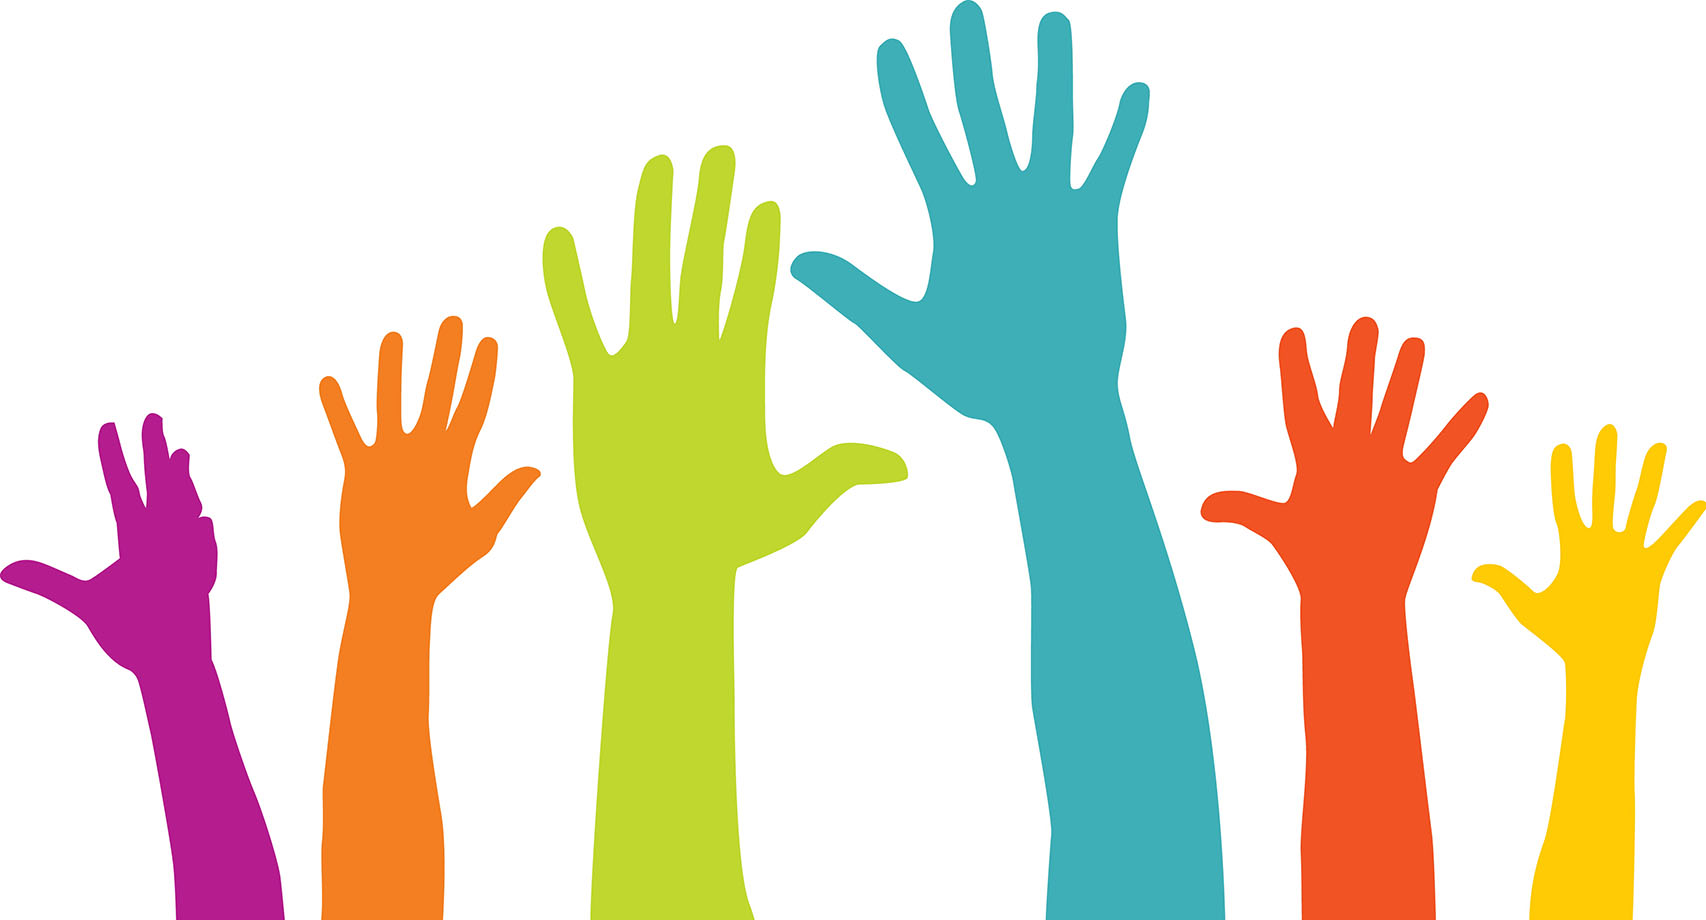 Graphic showing hands in the air